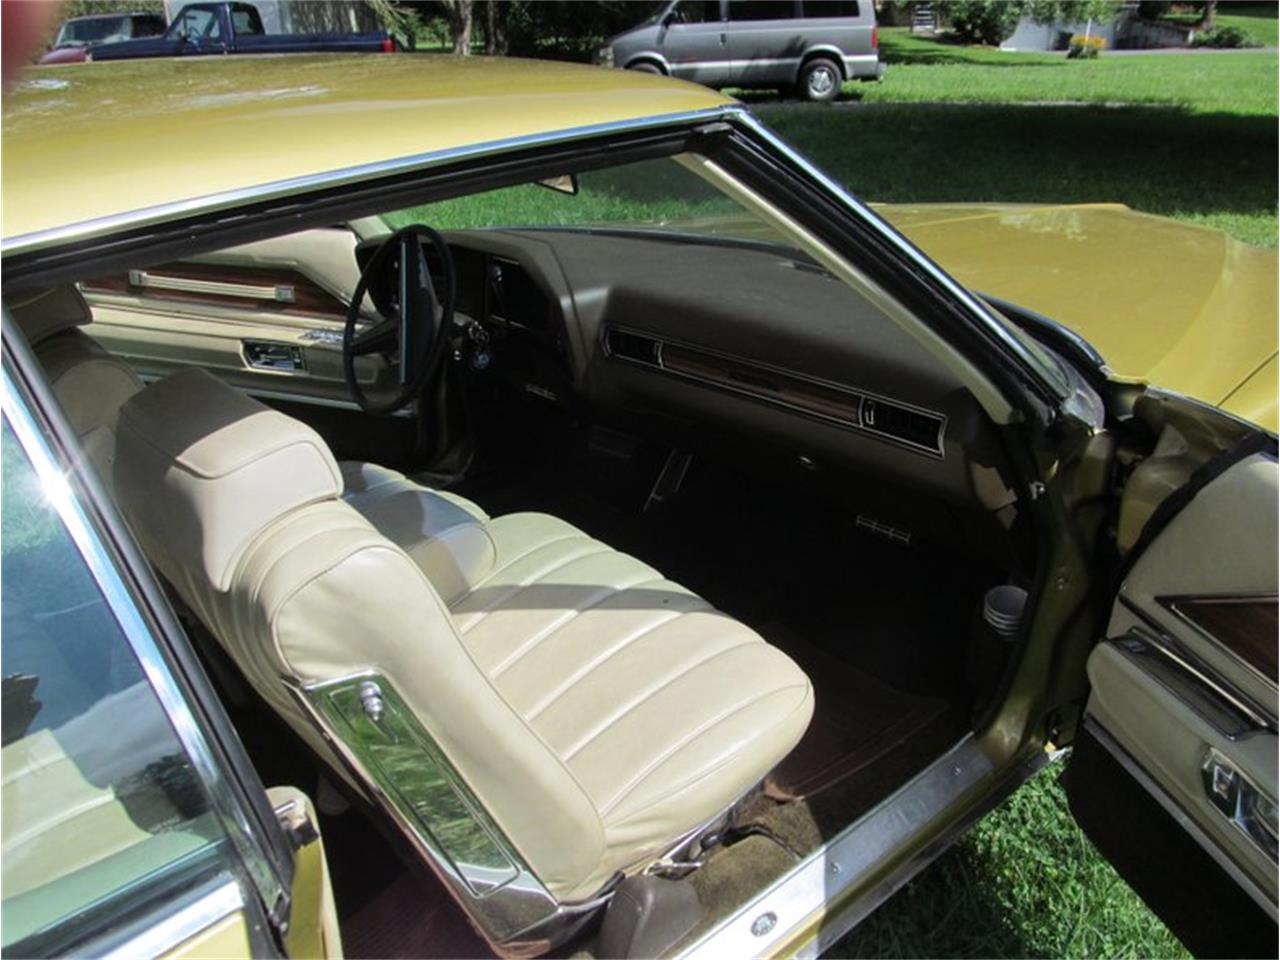 Large Picture of 1973 Buick Riviera located in Florida - $25,000.00 - P63G